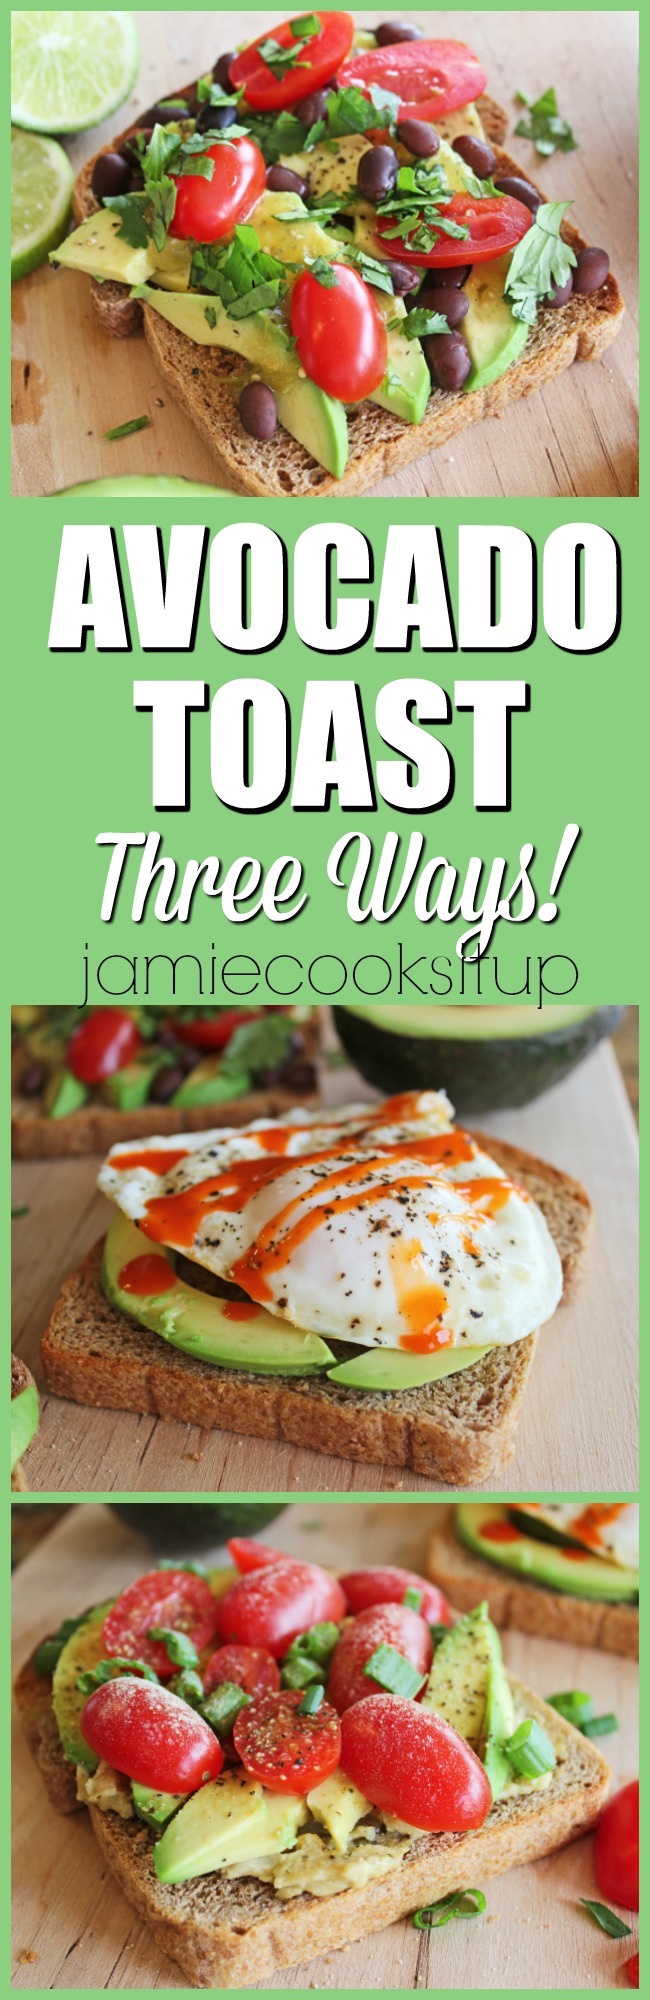 Avocado Toast Three Ways from Jamie Cooks It Up!